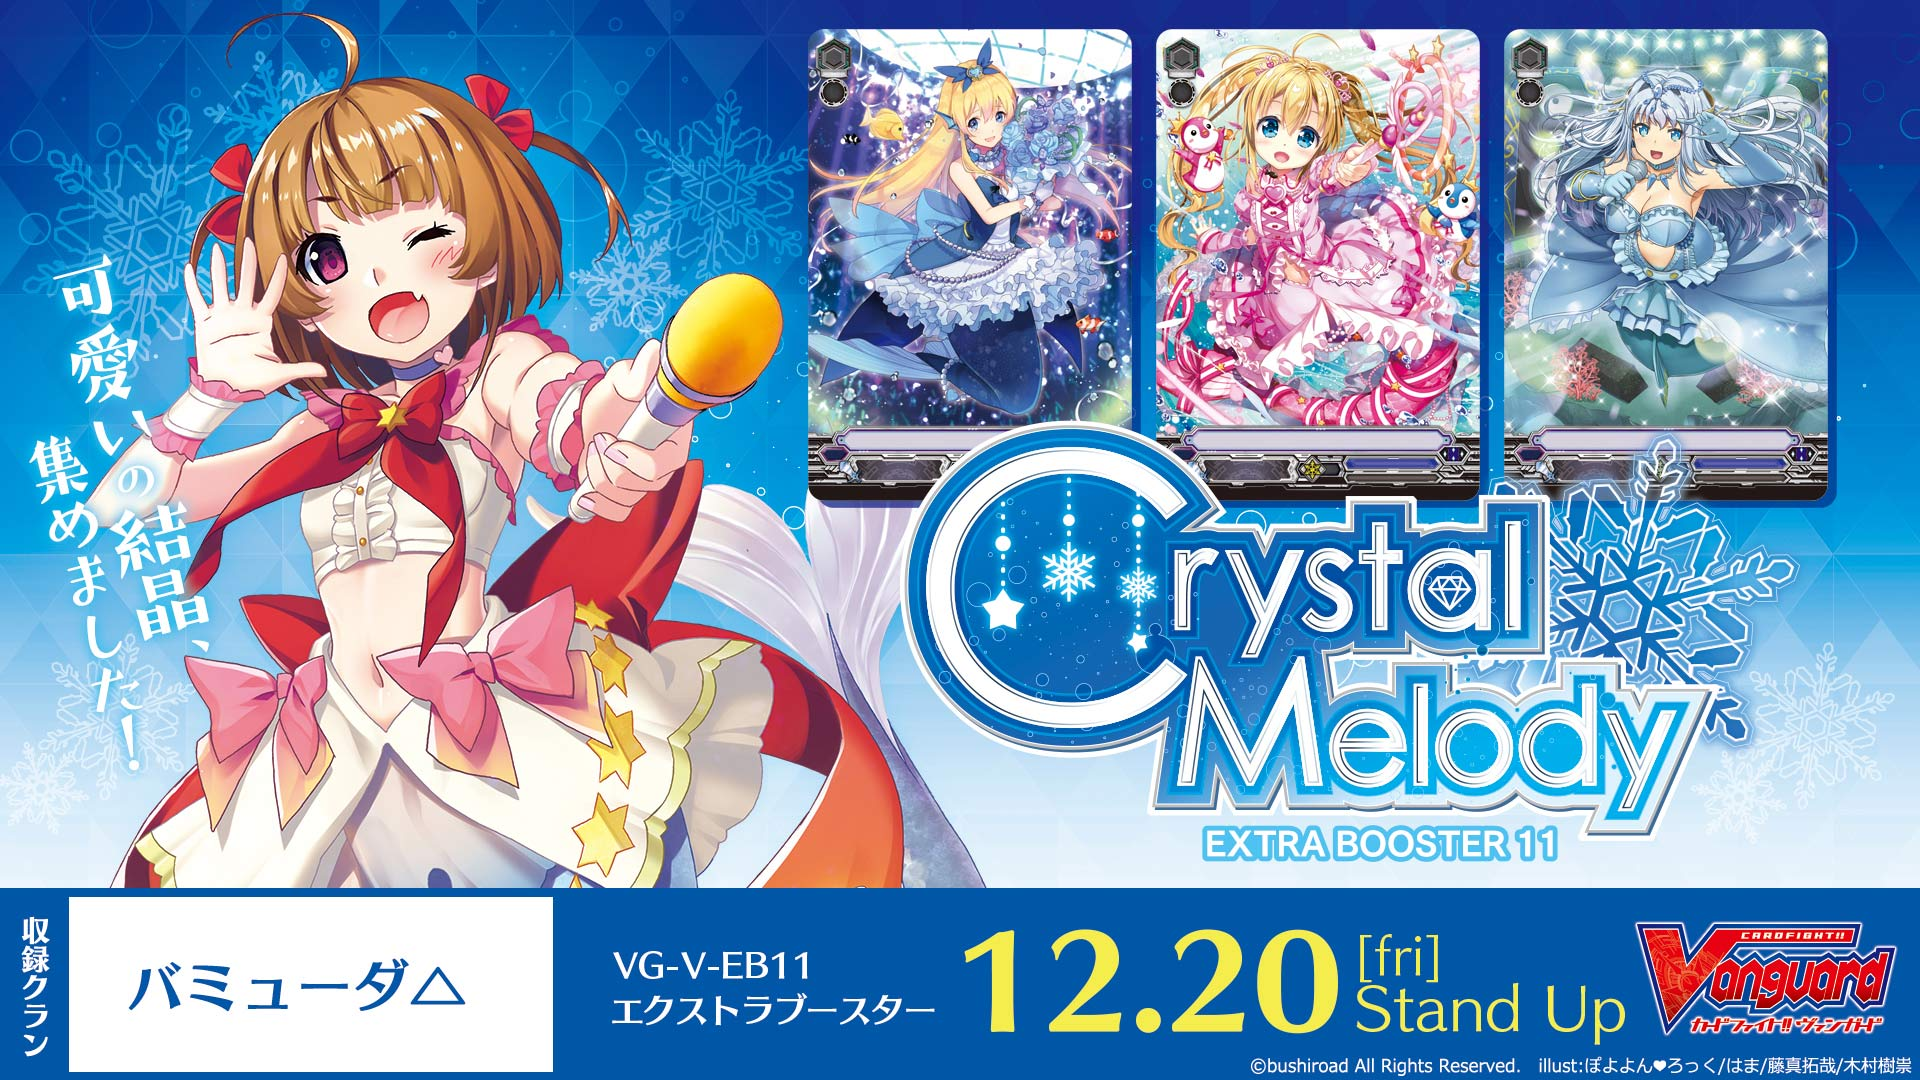 crystal melody